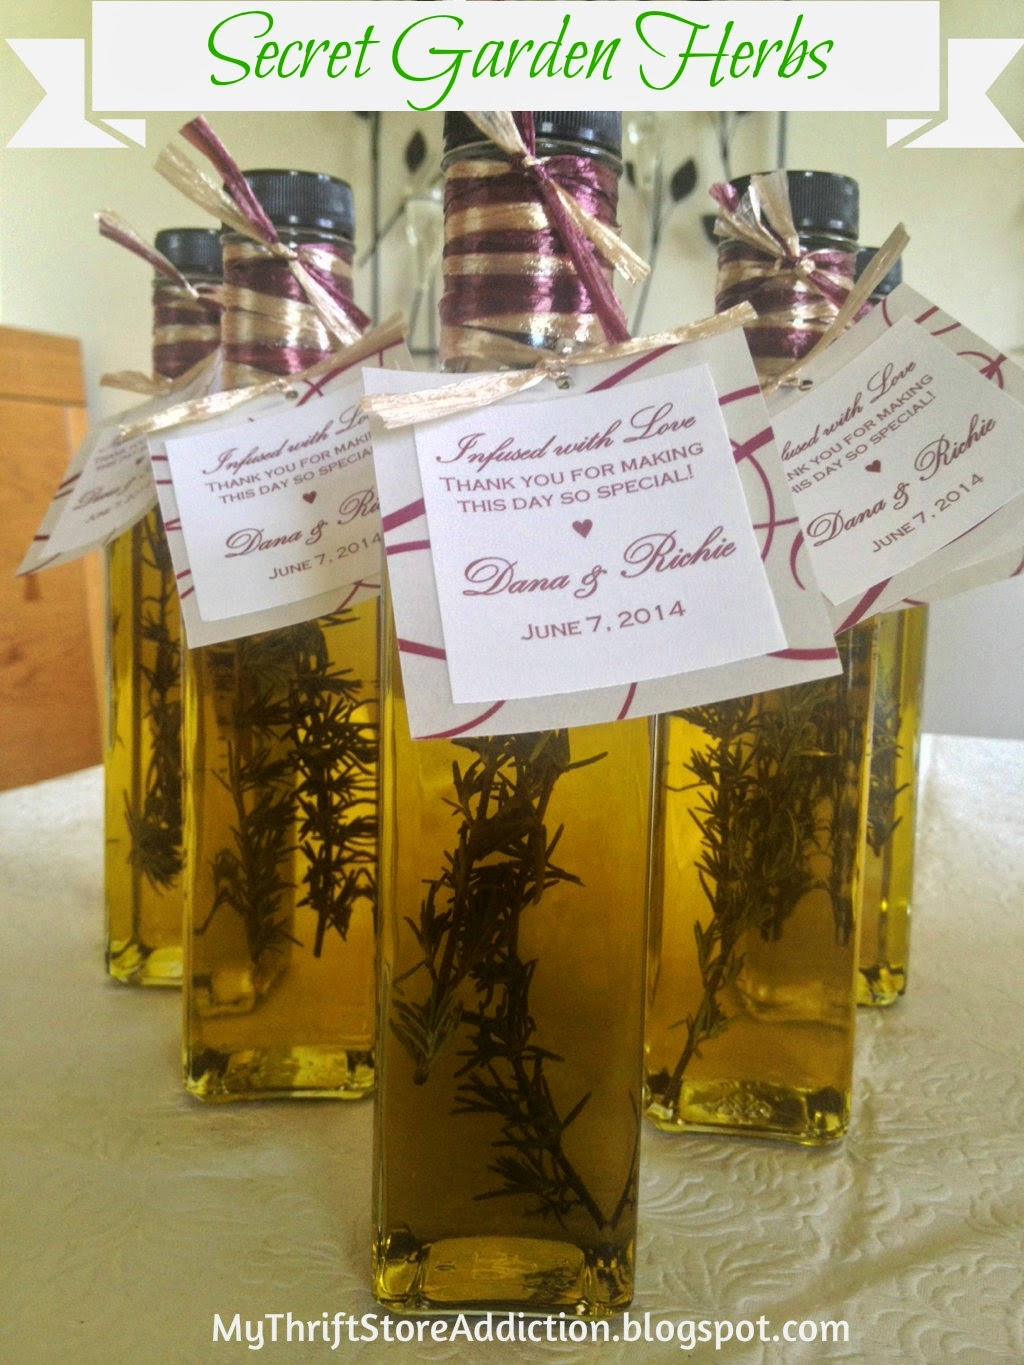 Organic rosemary infused oil